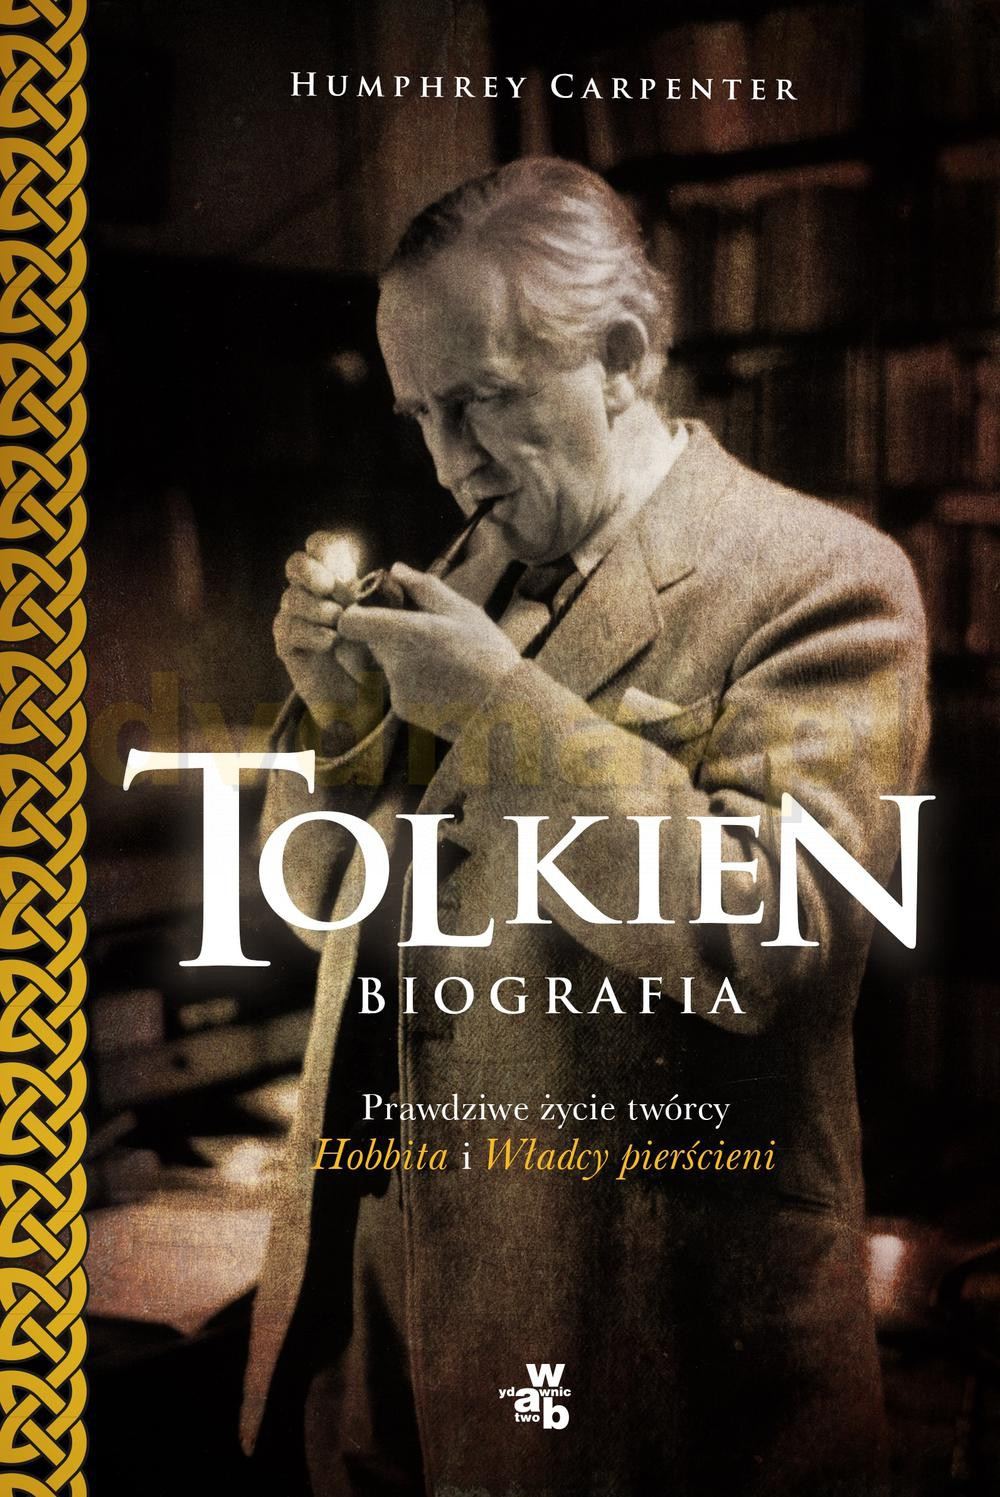 Tolkien biografia - Humphrey Carpenter (twarda) [KSIĄŻKA] - Humphrey Carpenter